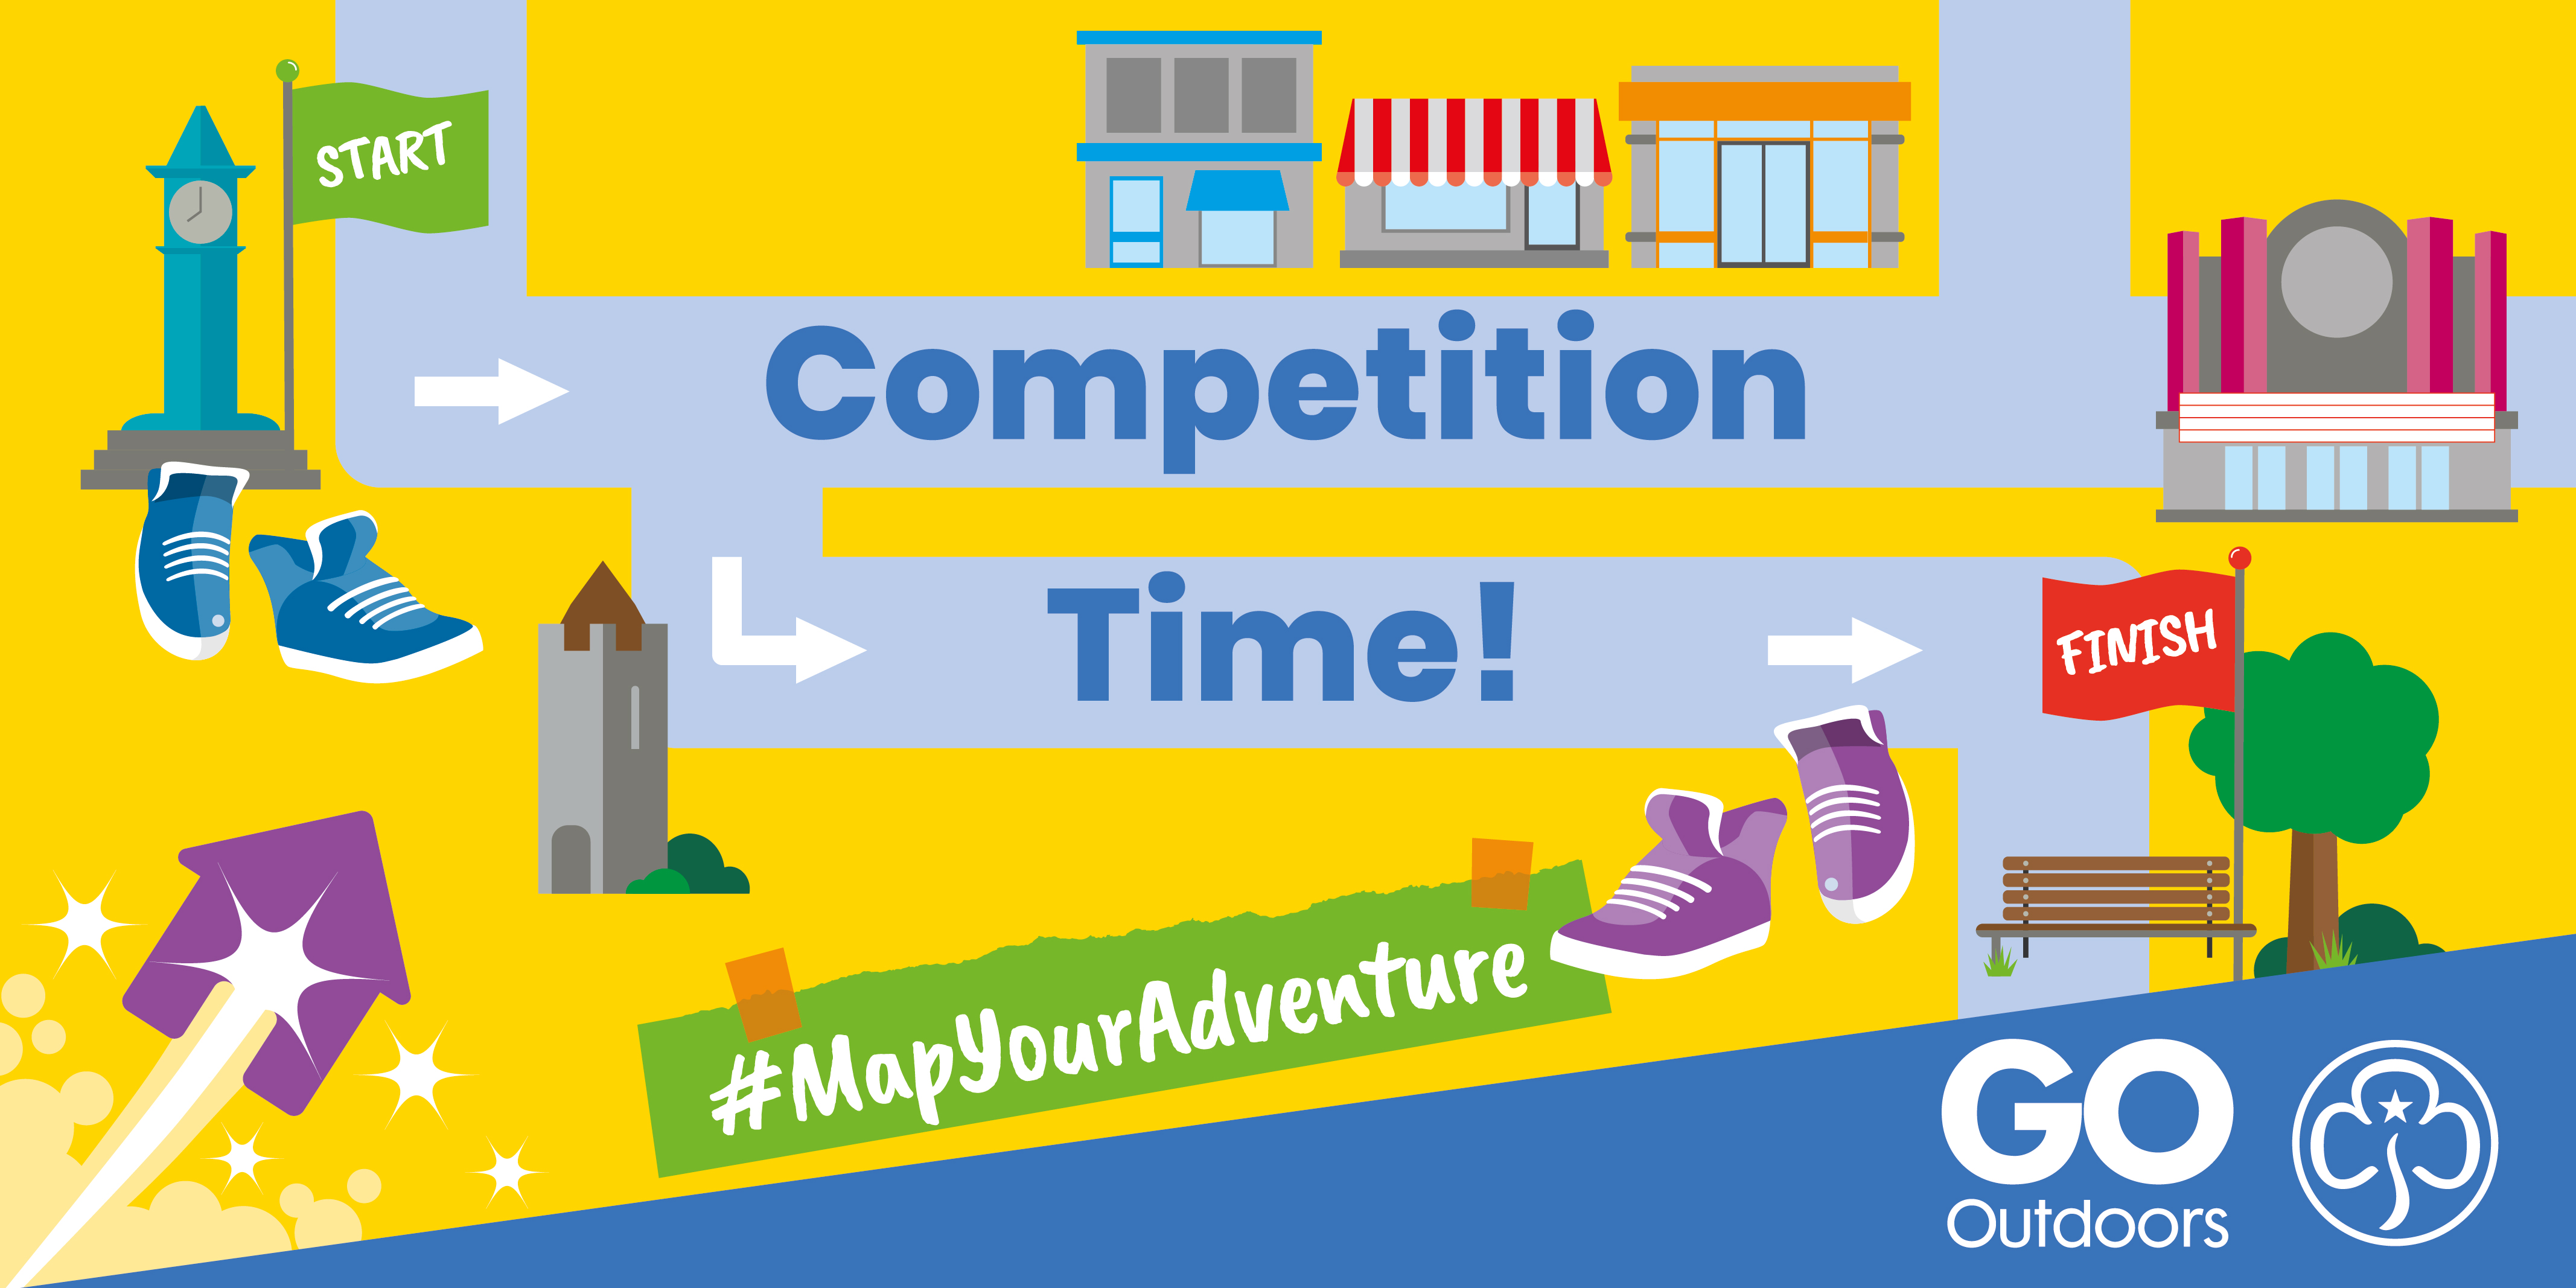 Competition Time artwork for GO Outdoors and Girlguiding